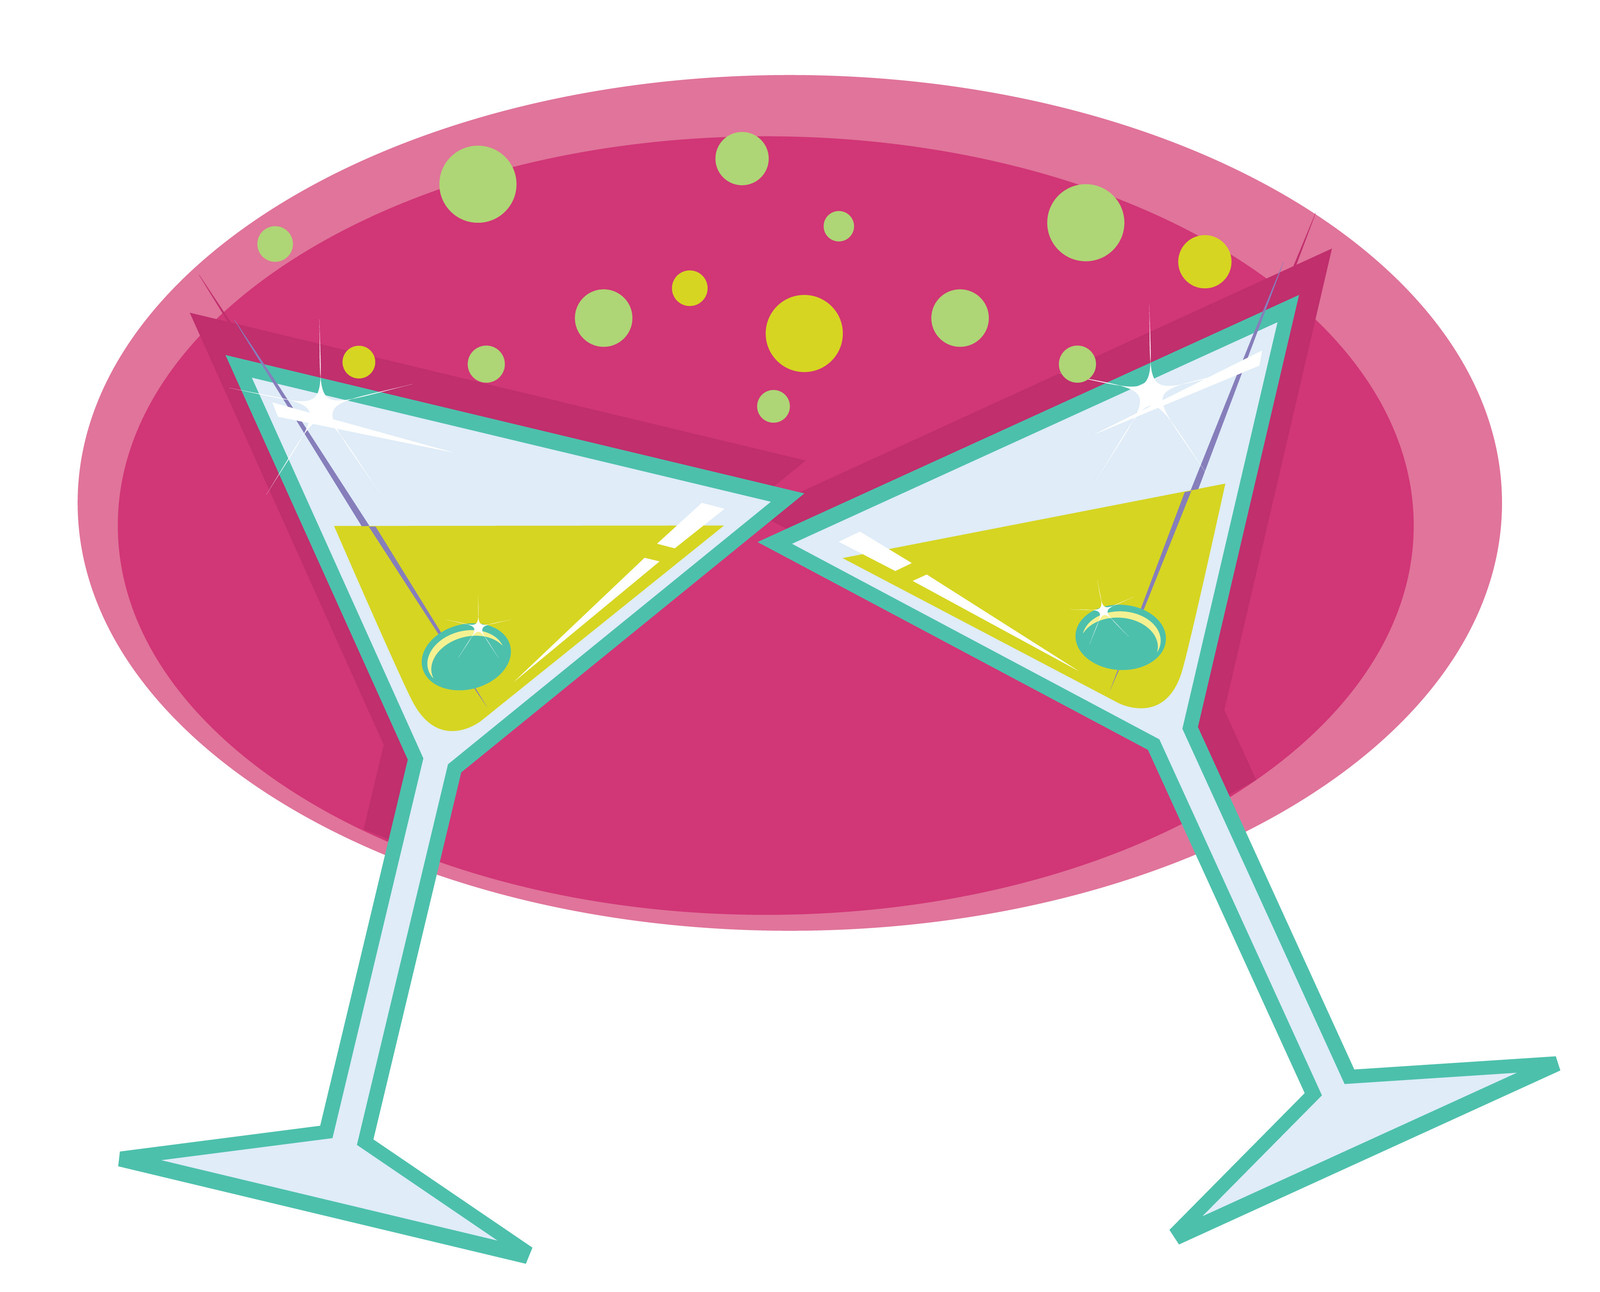 Wine glass designs free. Cheers clipart